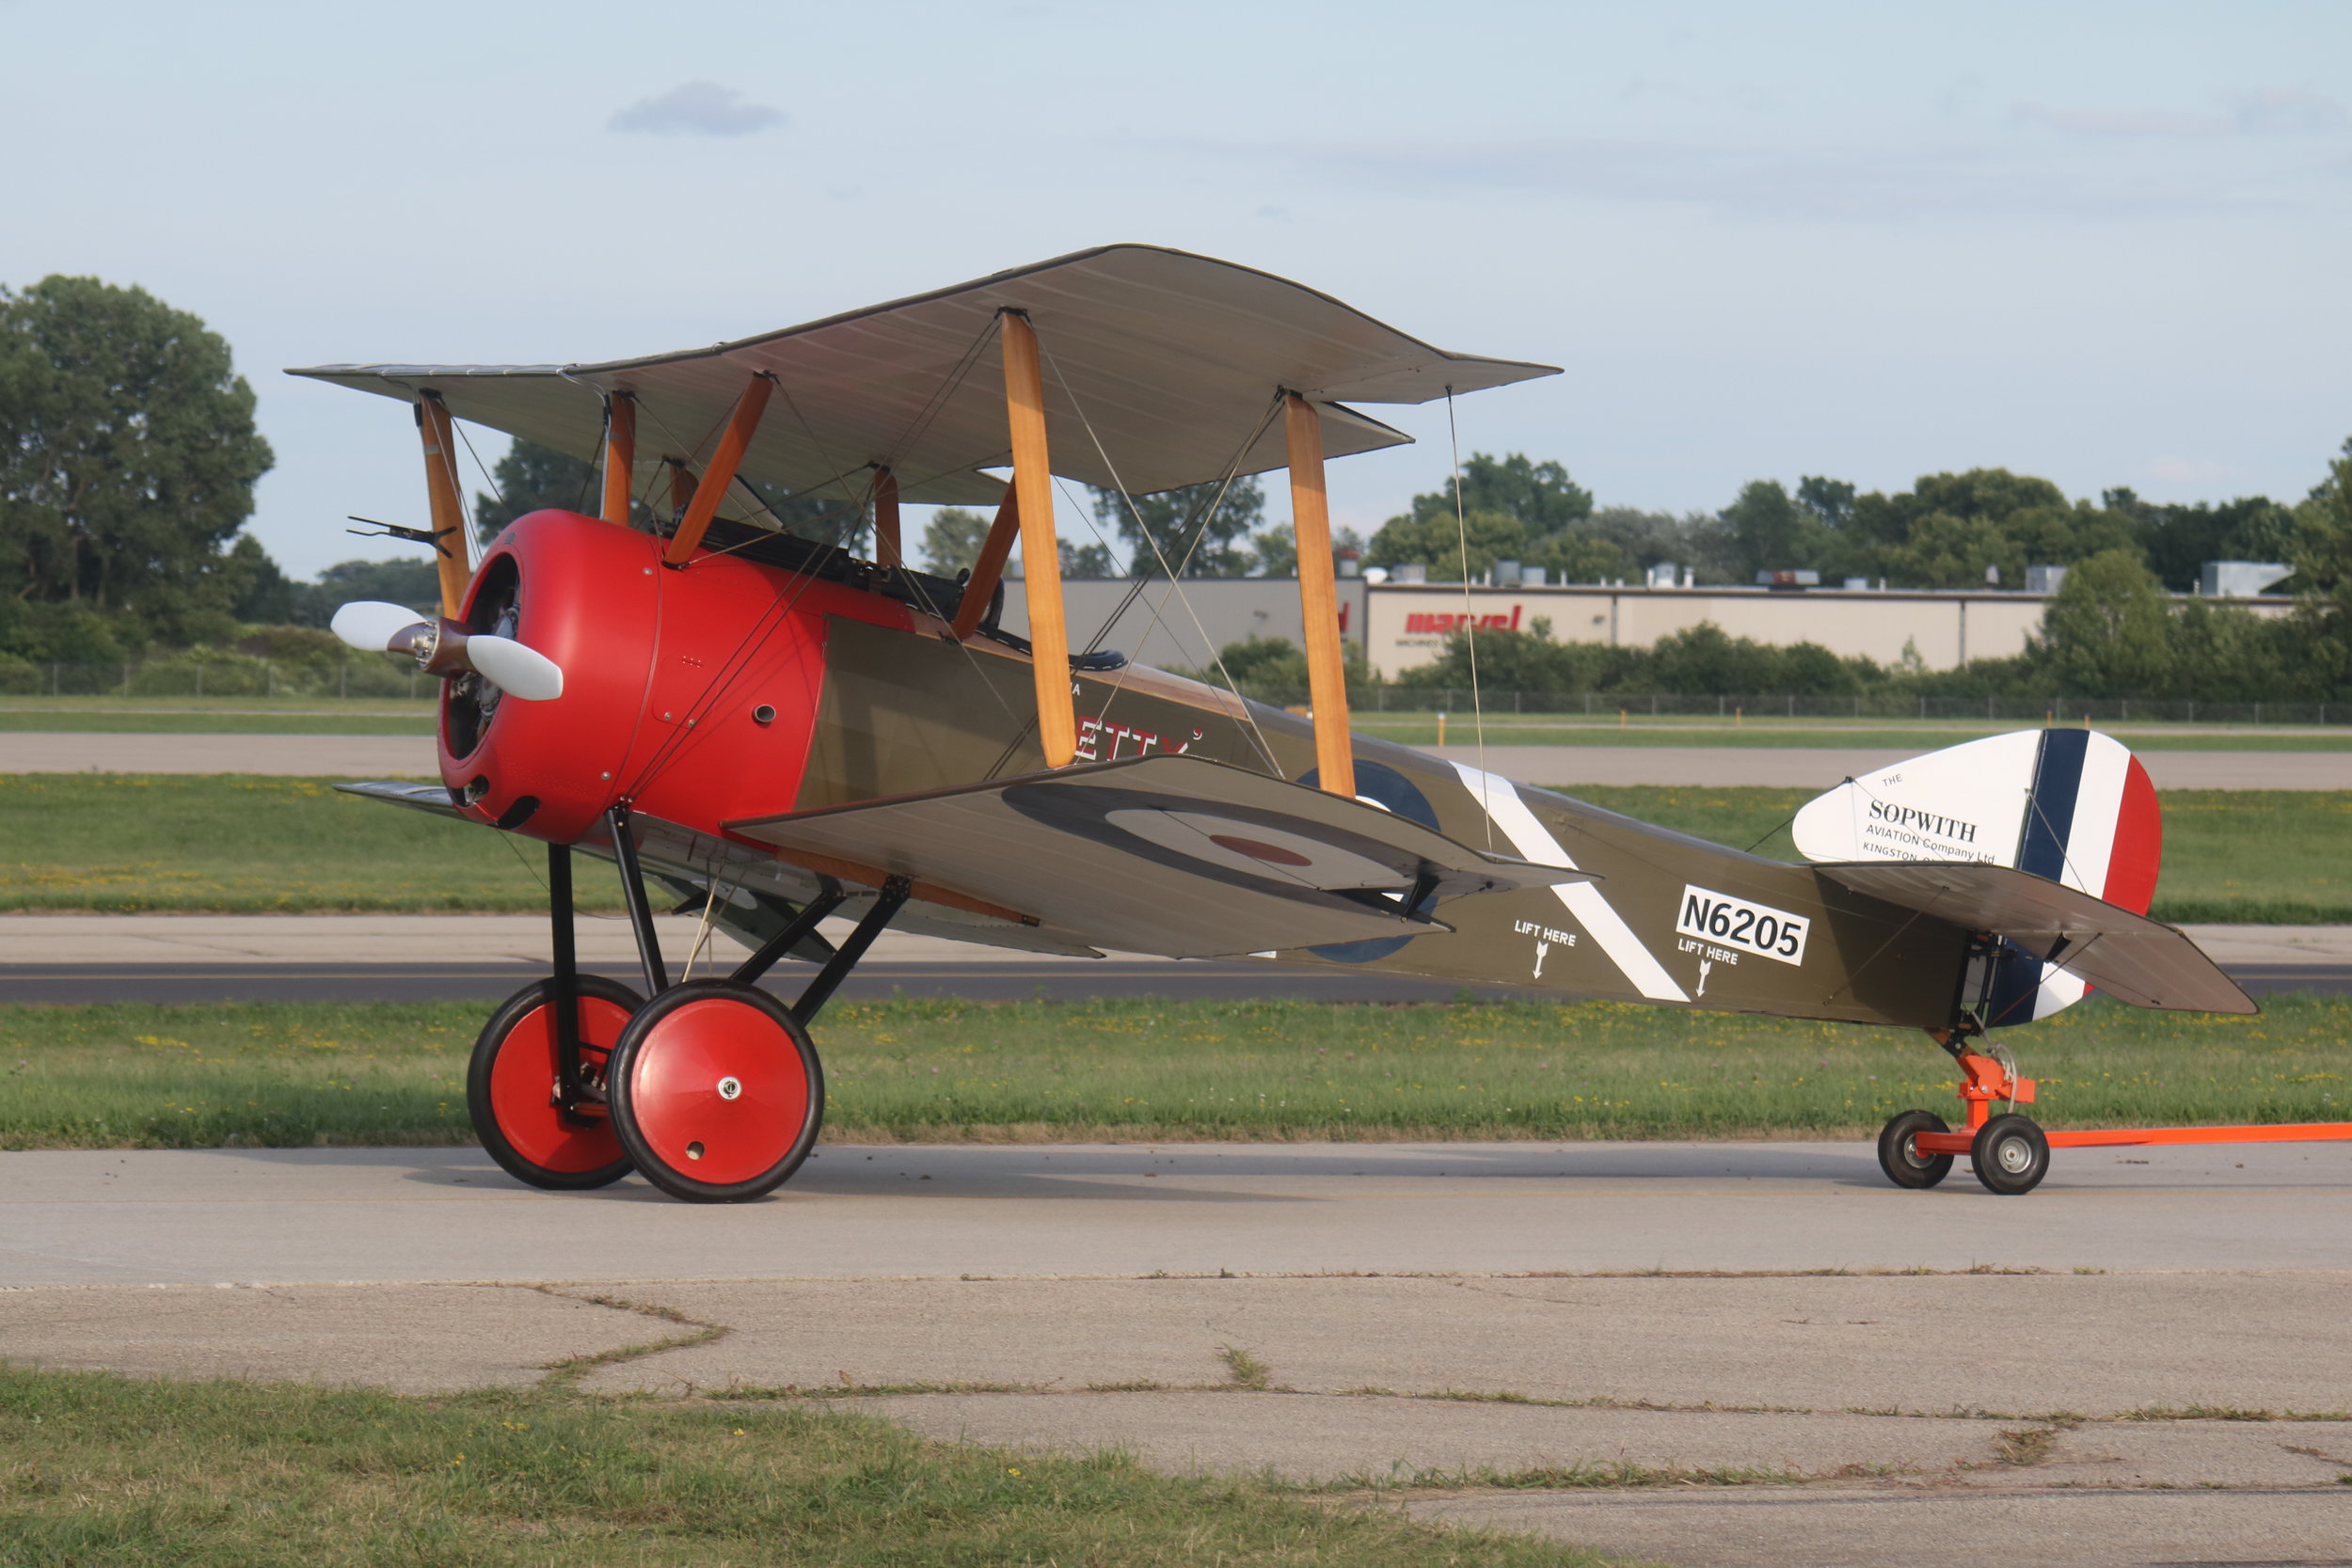 N6205 1916 Sopwith Pup (replica) taxiing at Oshkosh 25th July 2018 taken by Andrew Tenny